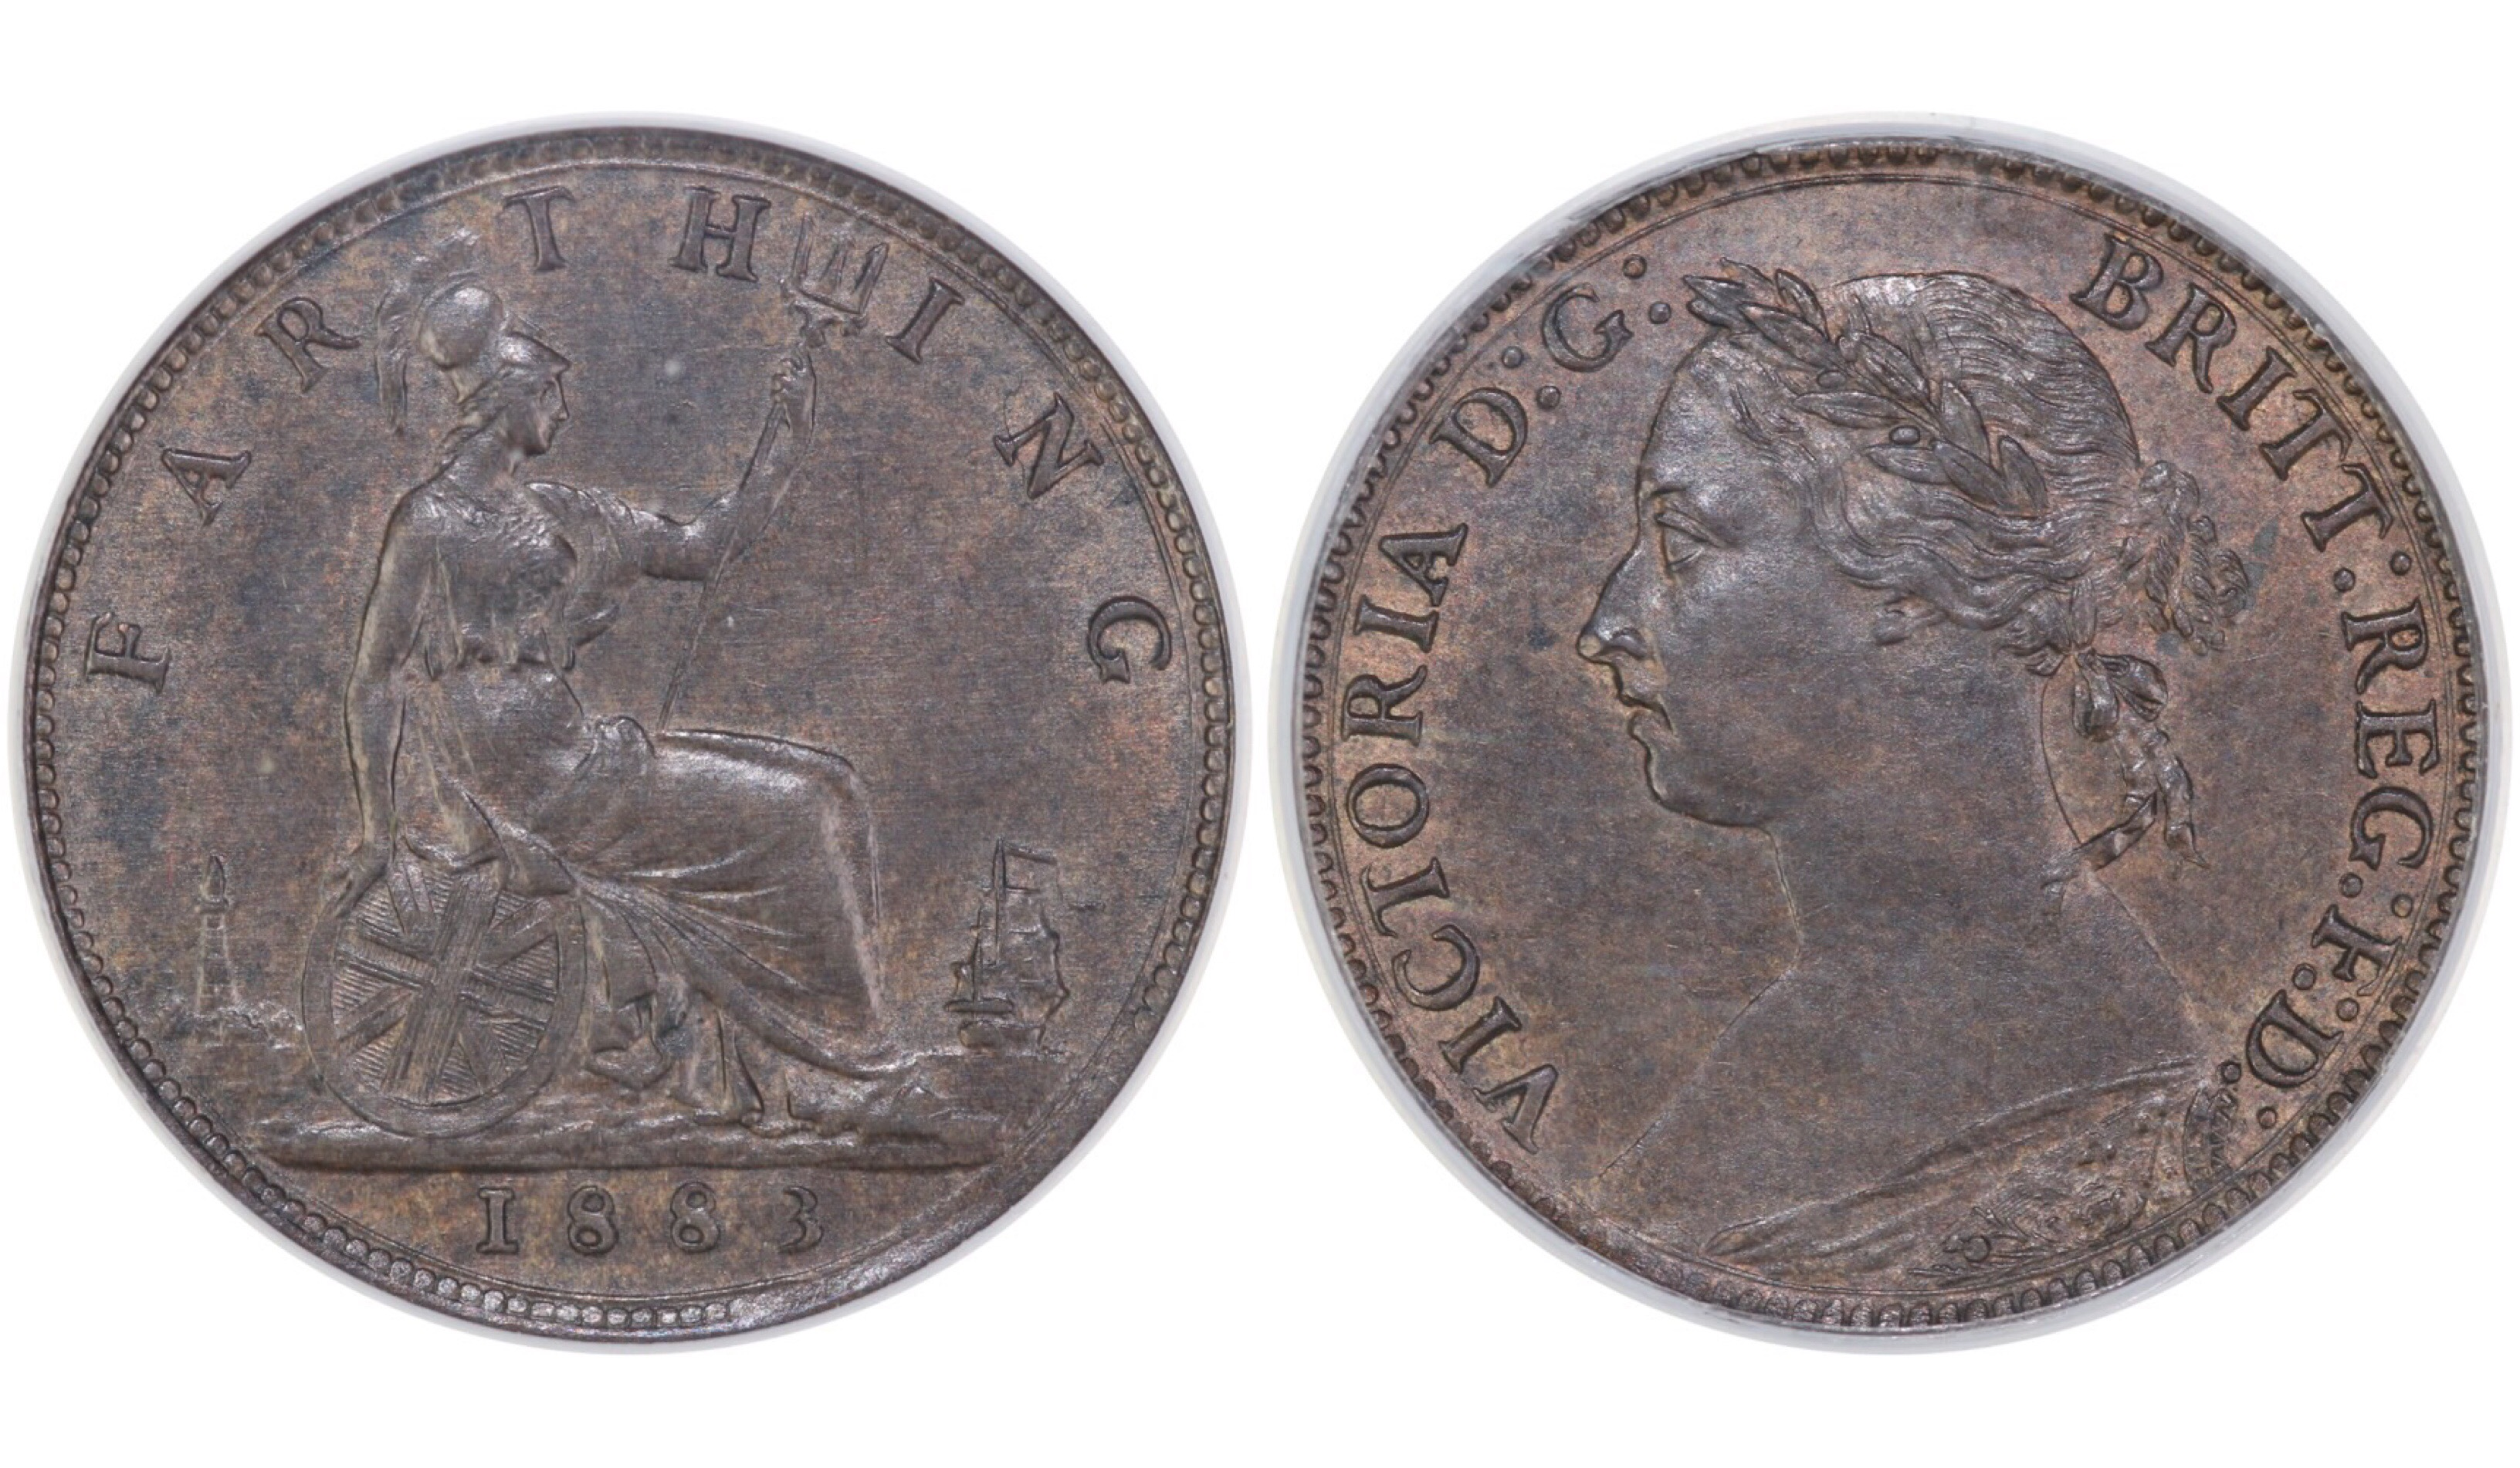 1883 Farthing, CGS 75, Victoria, CGS variety 2, Perfect F, UIN 21232